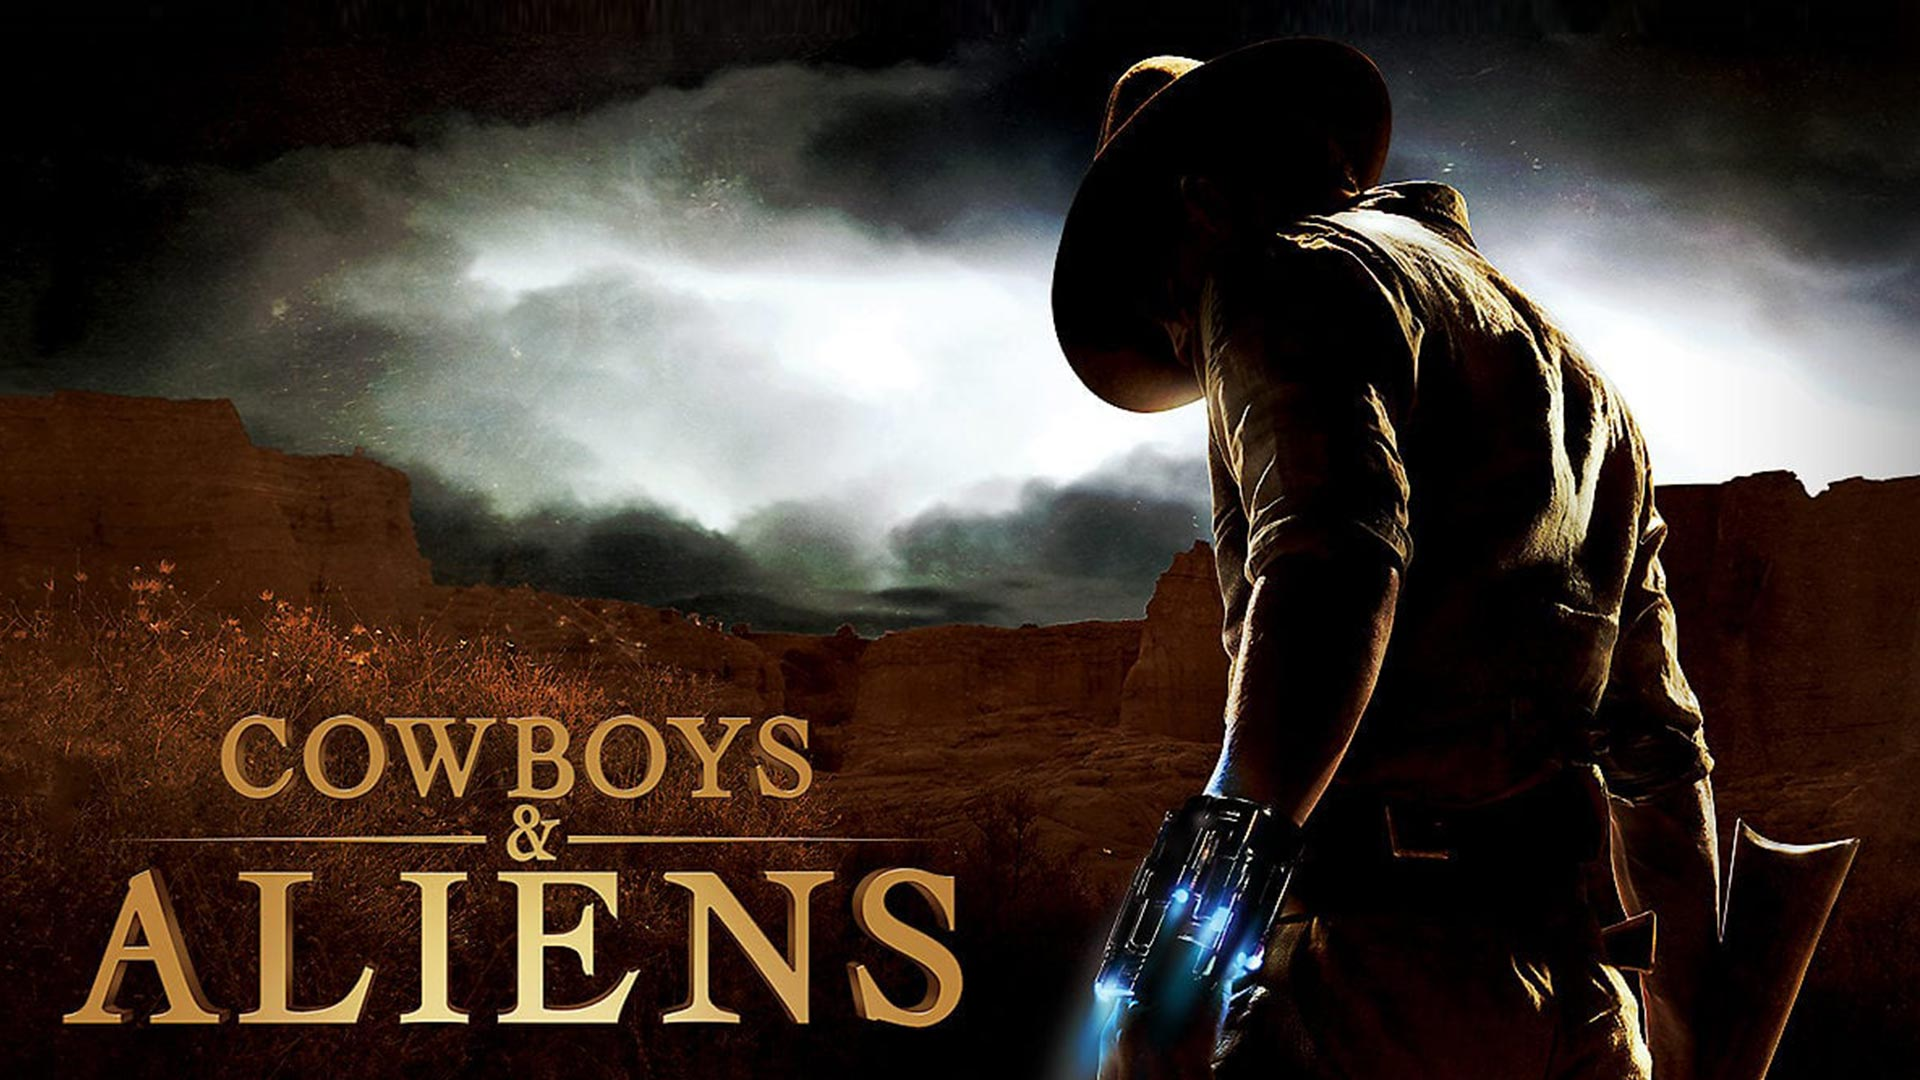 Cowboys & Aliens Unrated Version